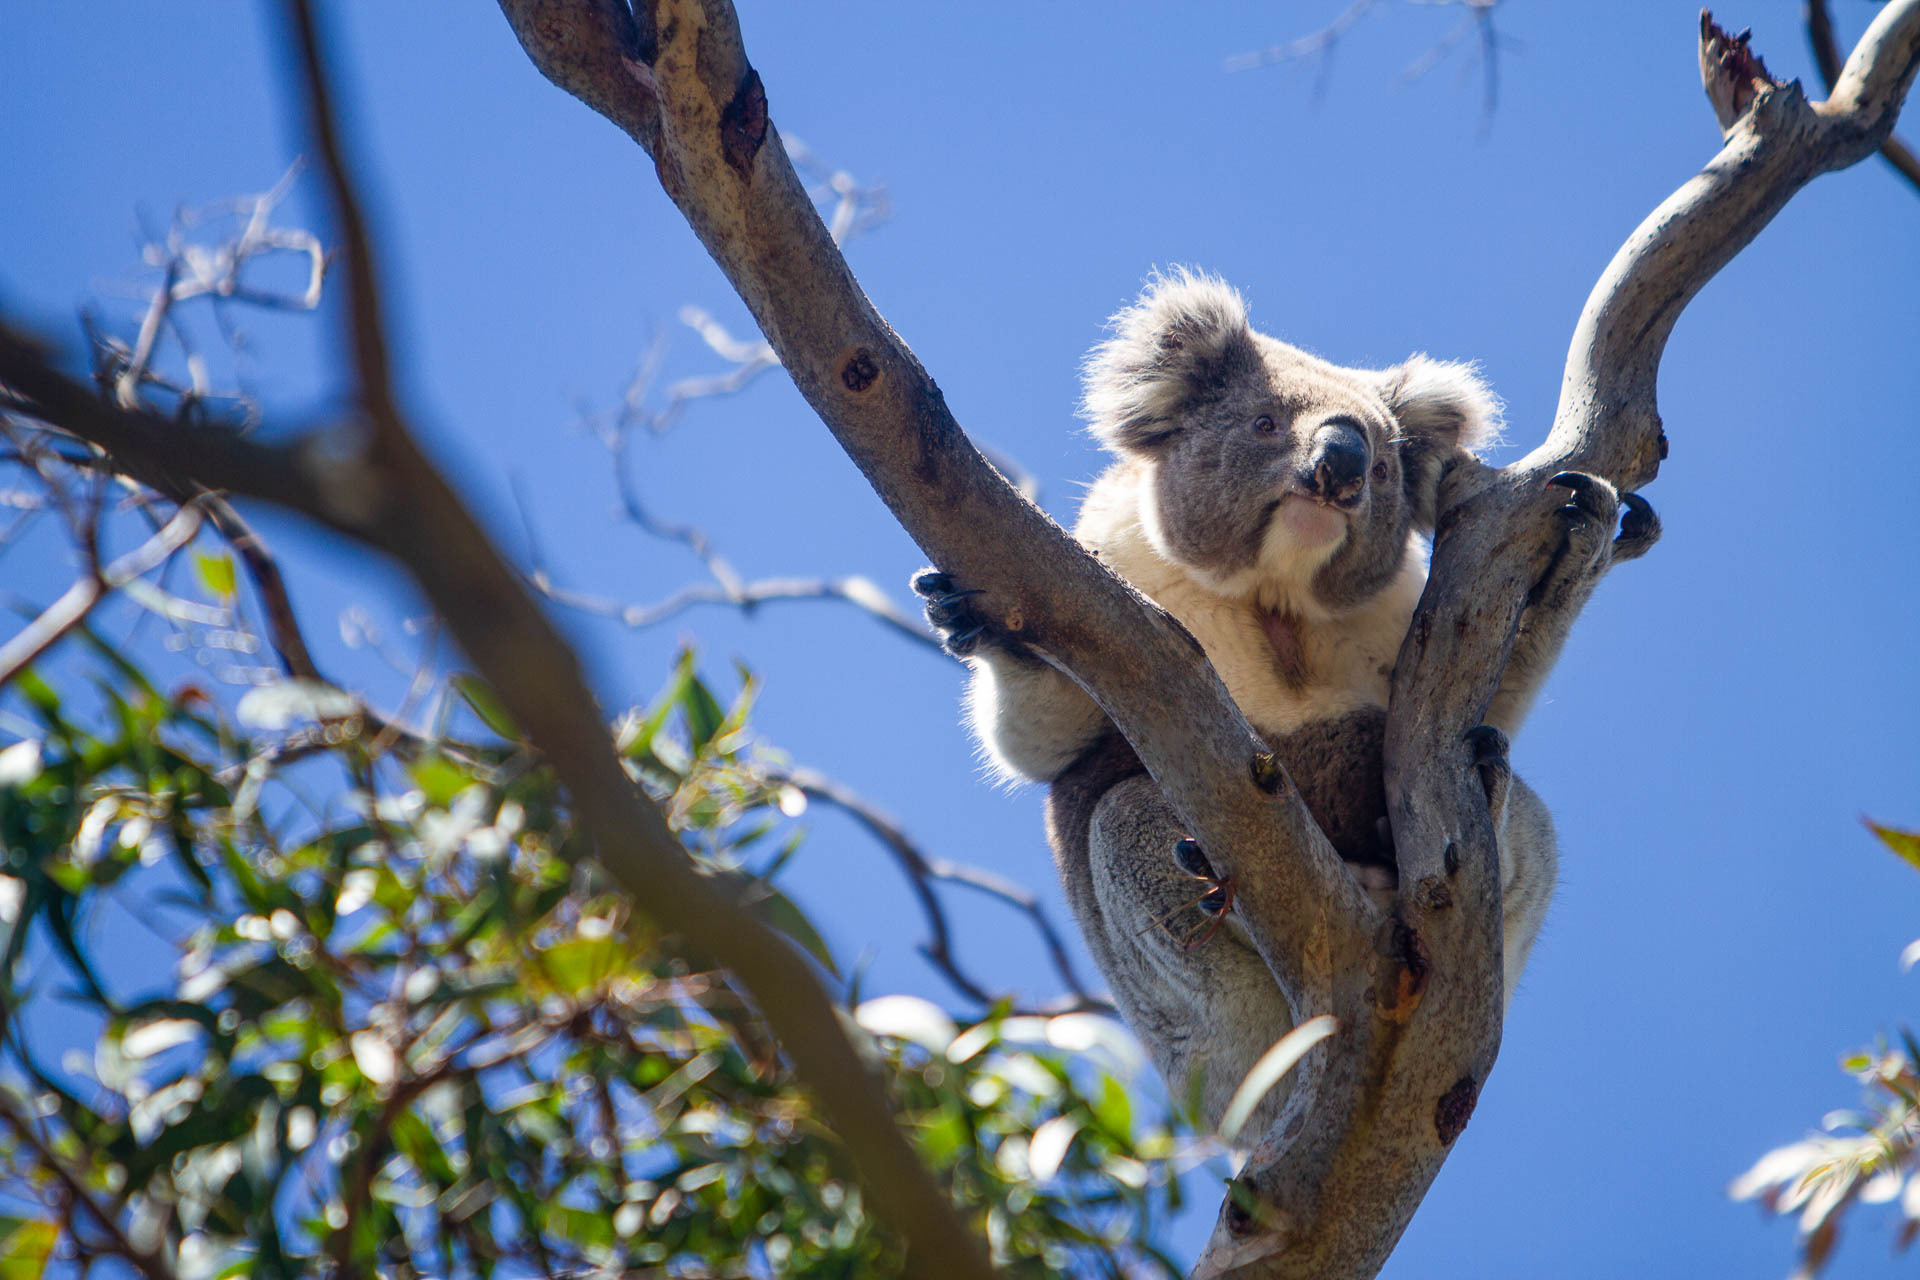 Koalas Under Threat – Can We Save Our Most Iconic Australian Animal, Marie-Laurence Paquette, koala in a tree, eucalypt, animal, native